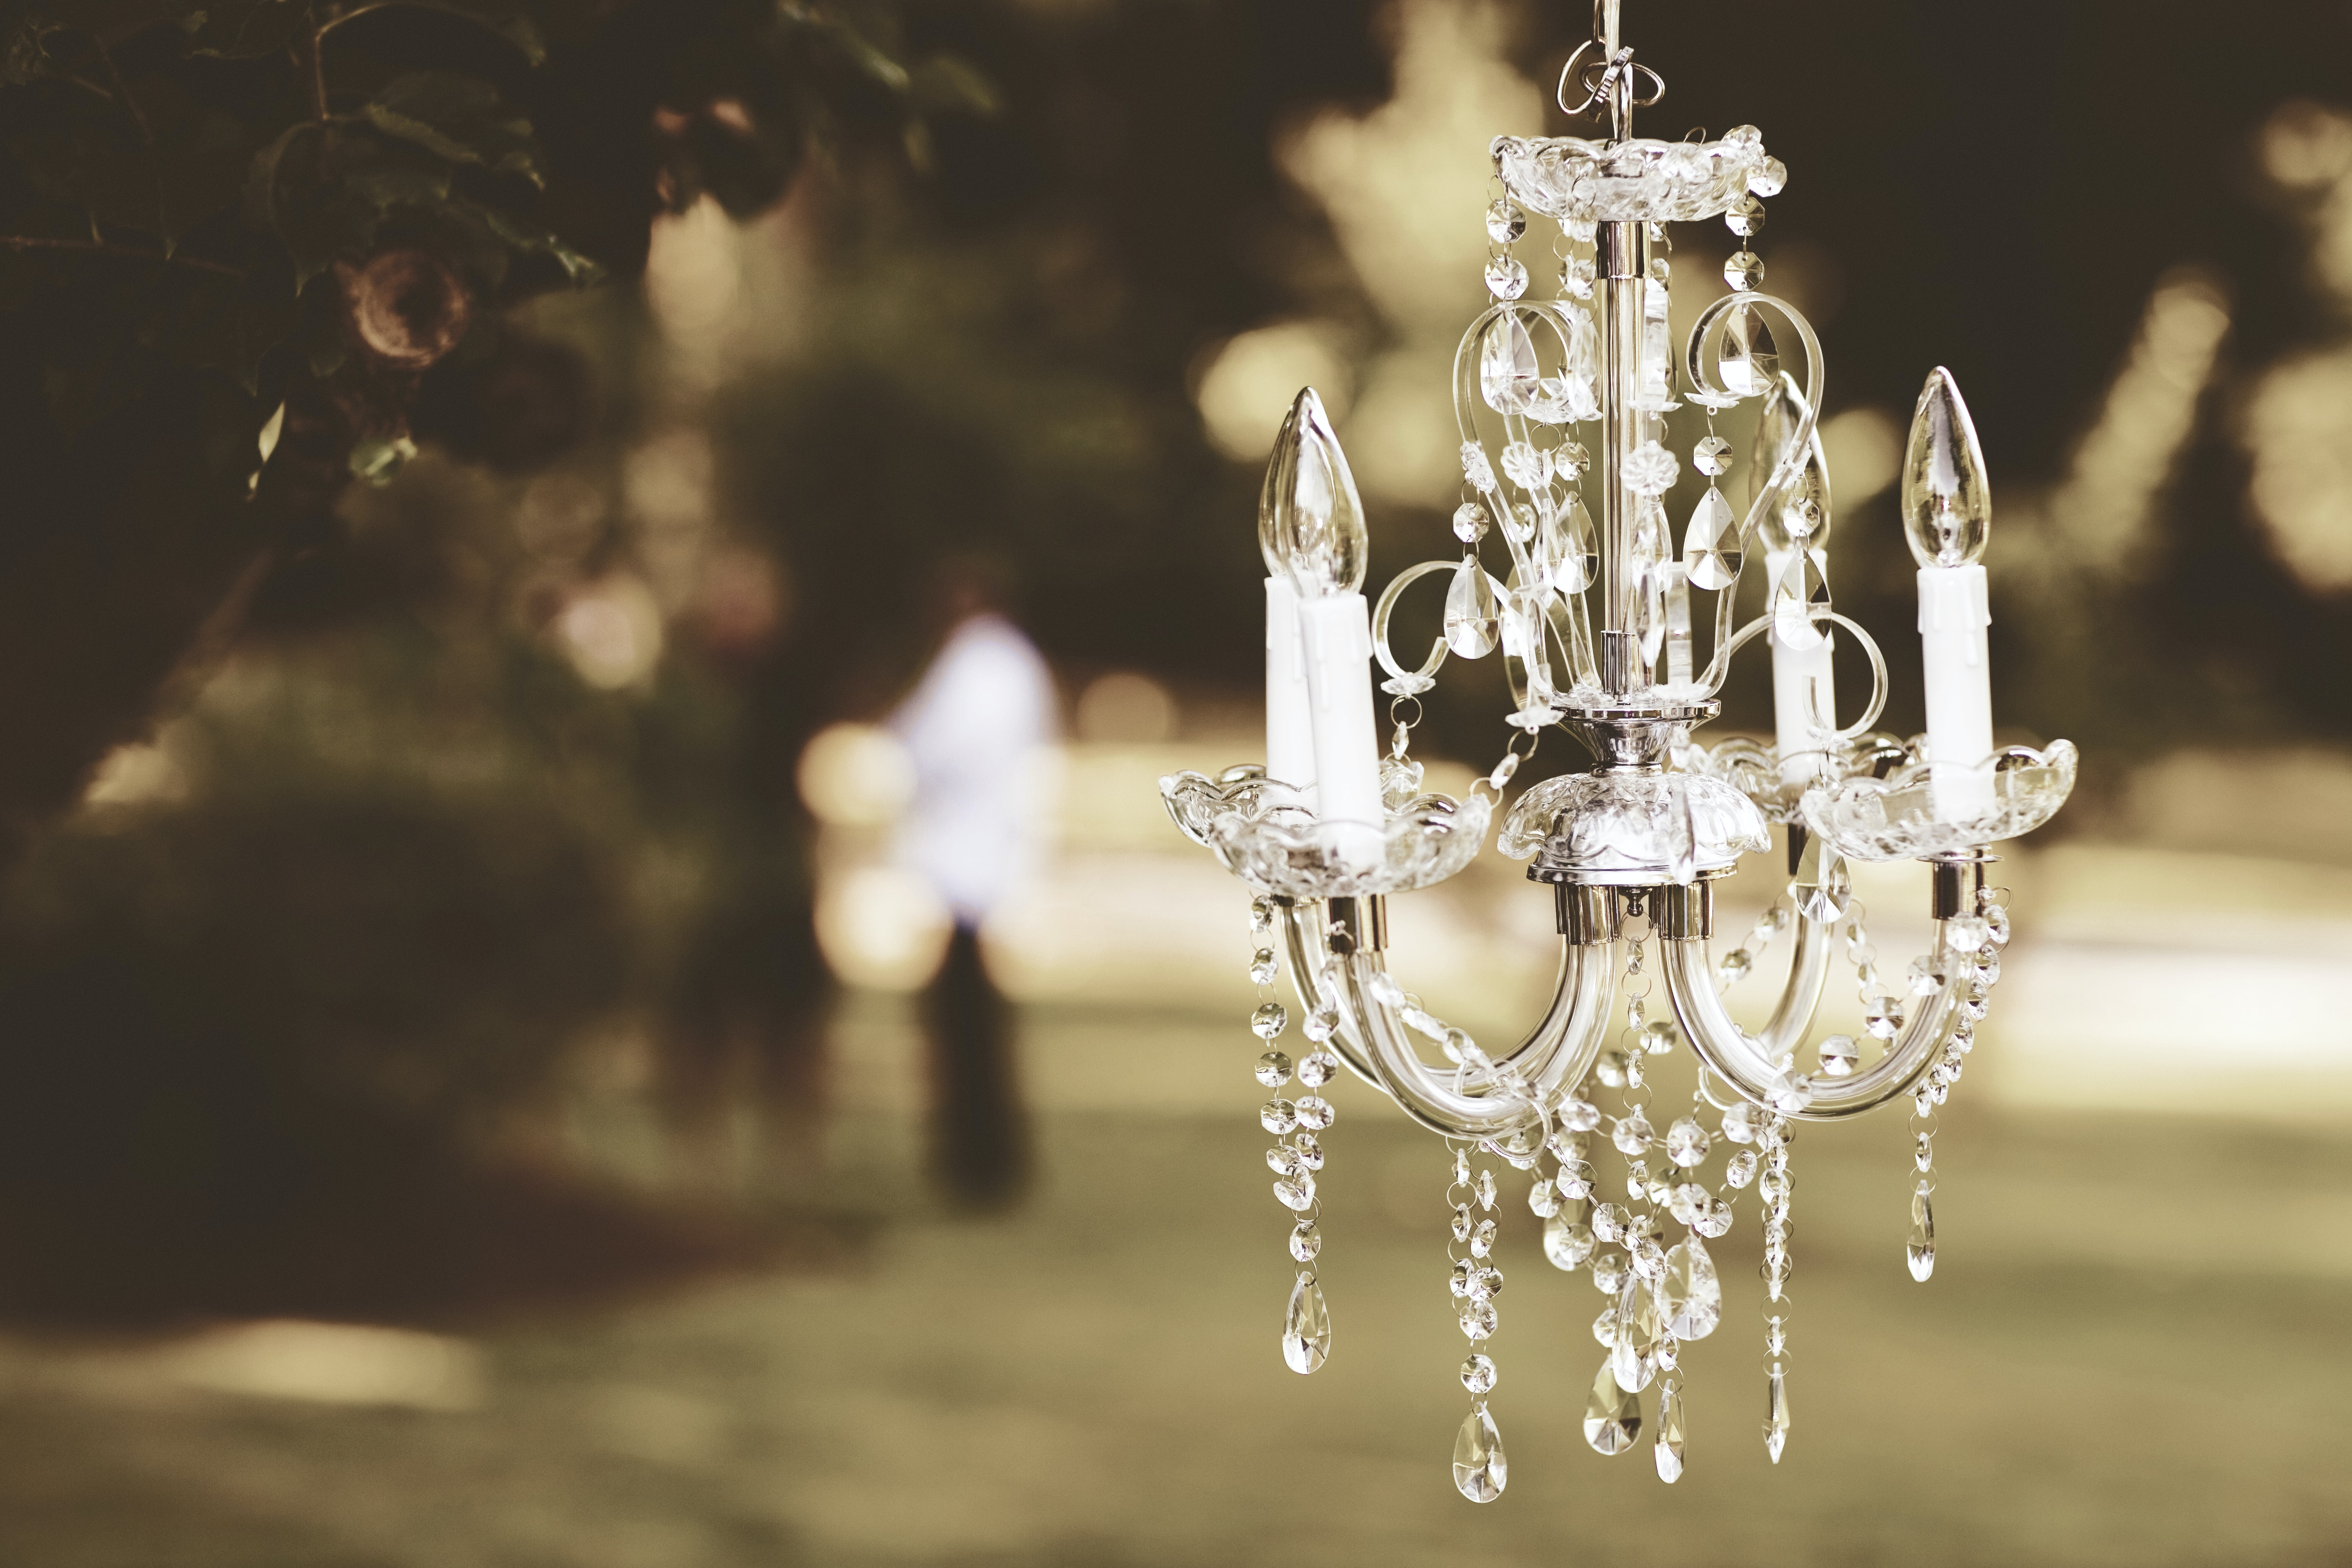 shallow focus photography of clear glass and silver chandelier